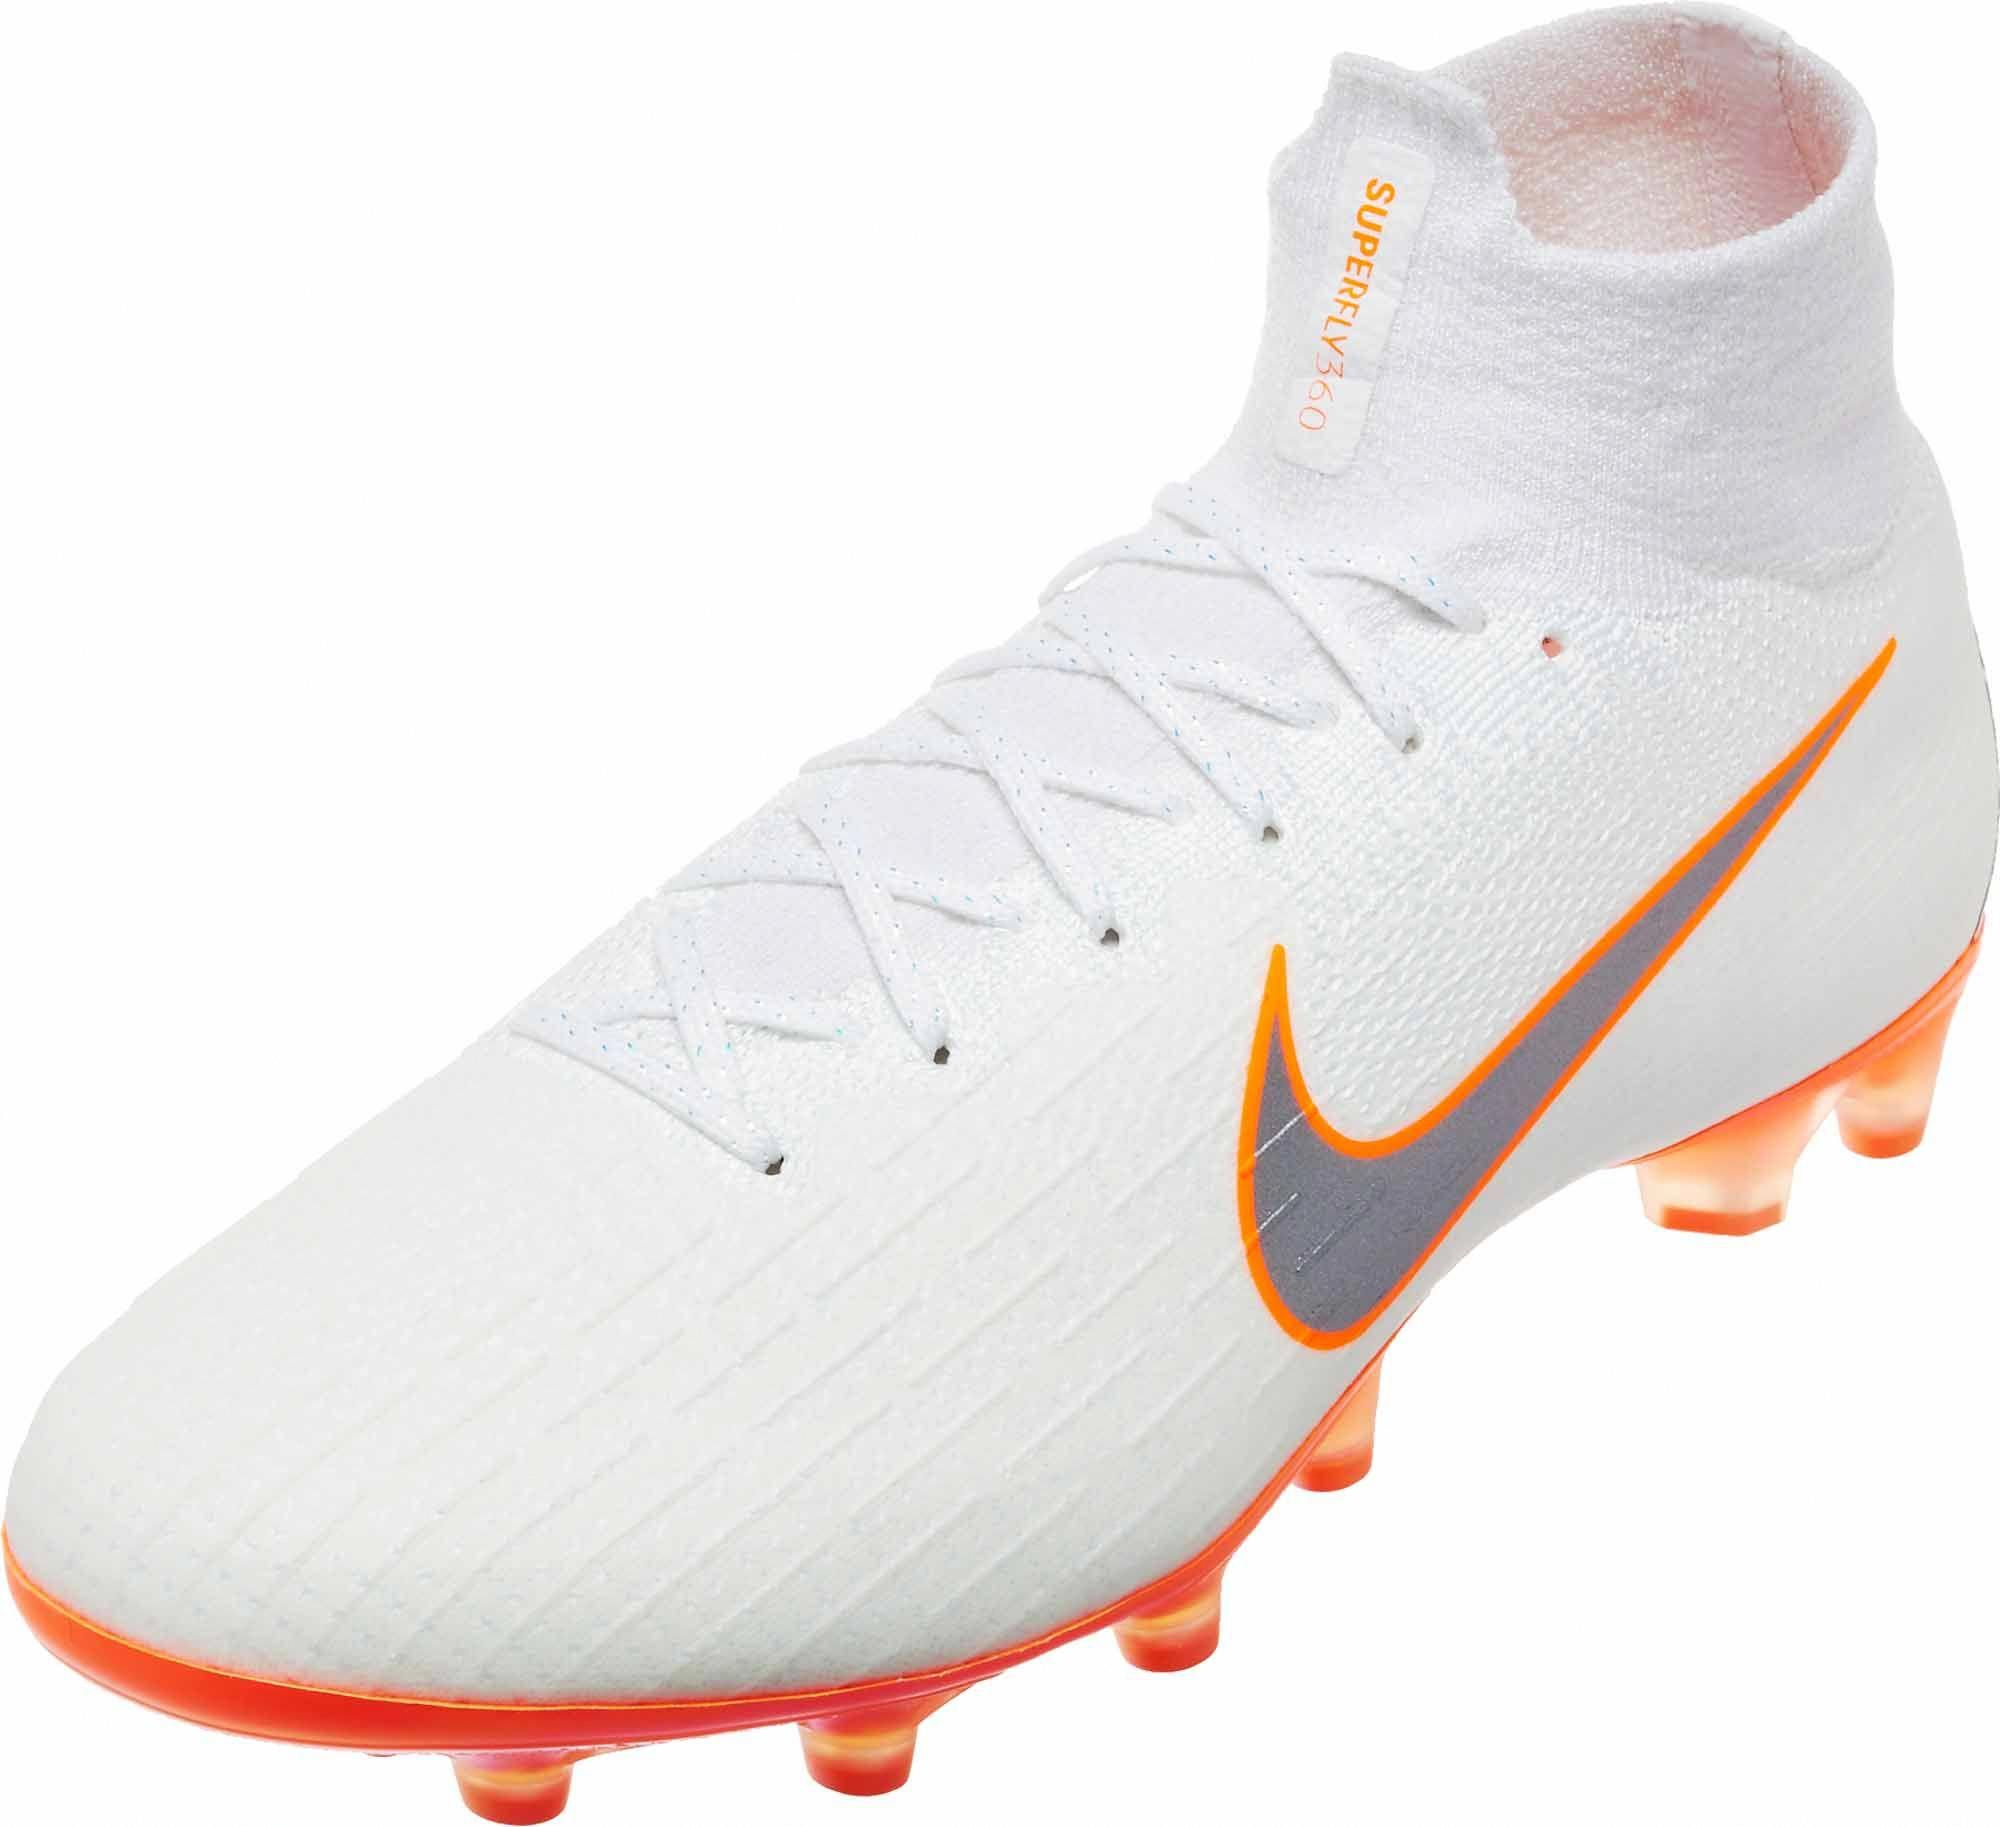 discount shop hot product really comfortable Just Do It World Cup pack Nike Mercurial Superfly Elite 6 ...